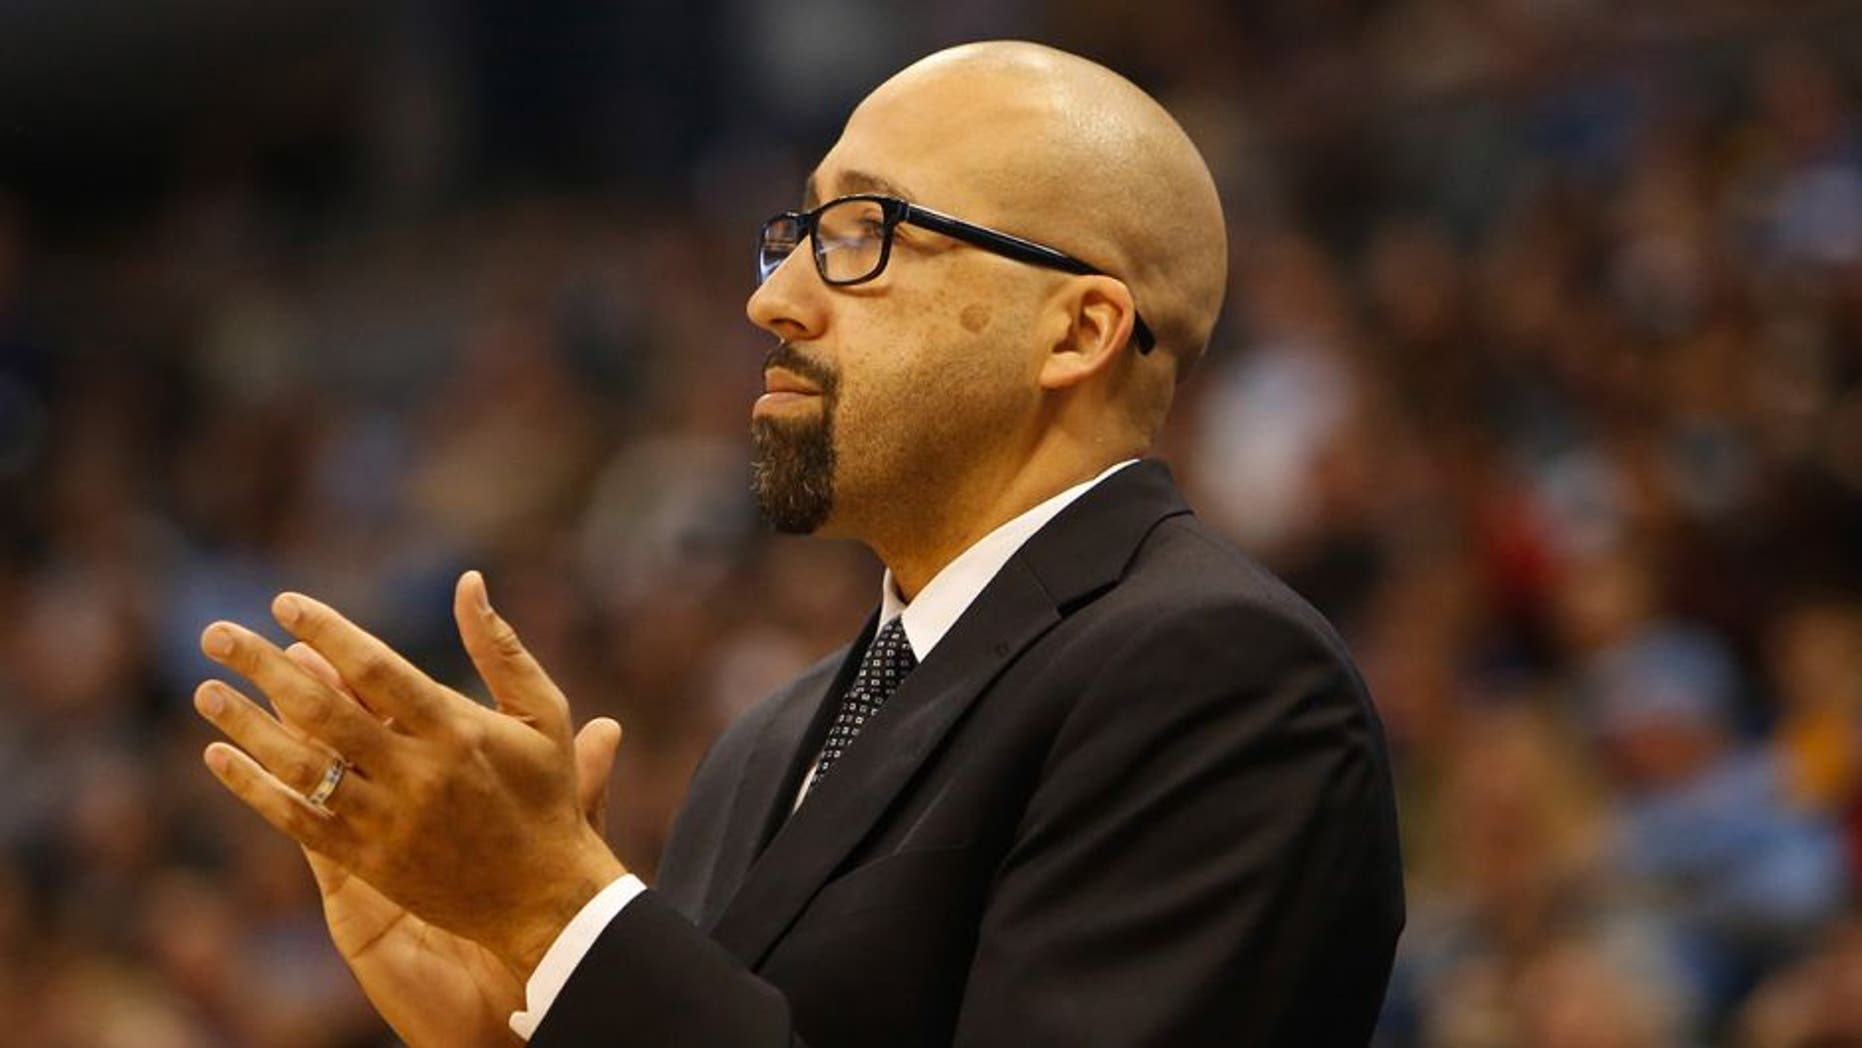 Dec 10, 2014; Denver, CO, USA; Miami Heat assistant head coach David Fizdale during the game against the Denver Nuggets at Pepsi Center. Mandatory Credit: Chris Humphreys-USA TODAY Sports